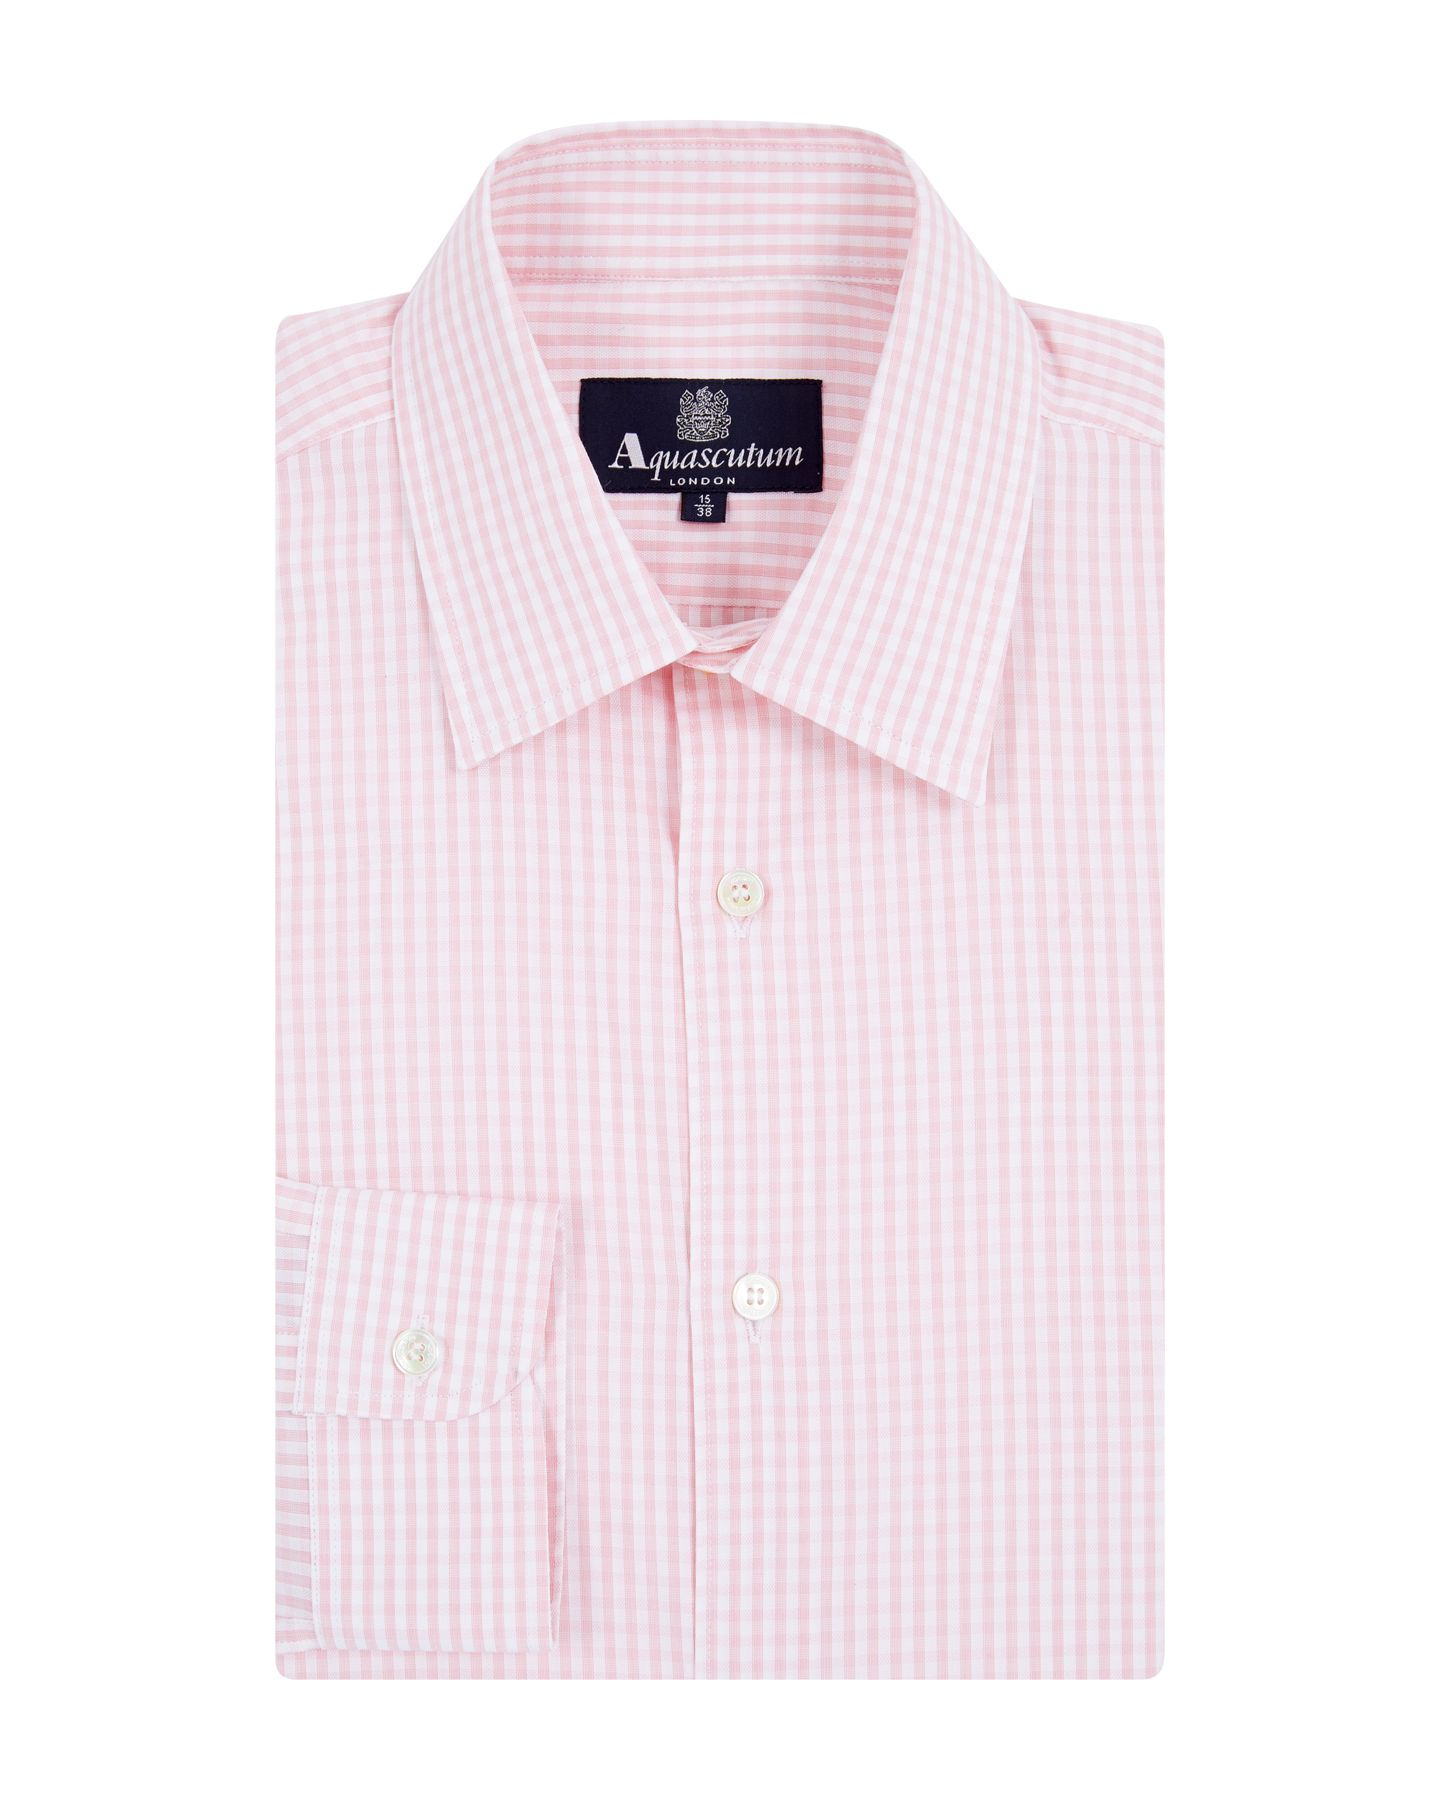 Textured gingham long sleeve shirt